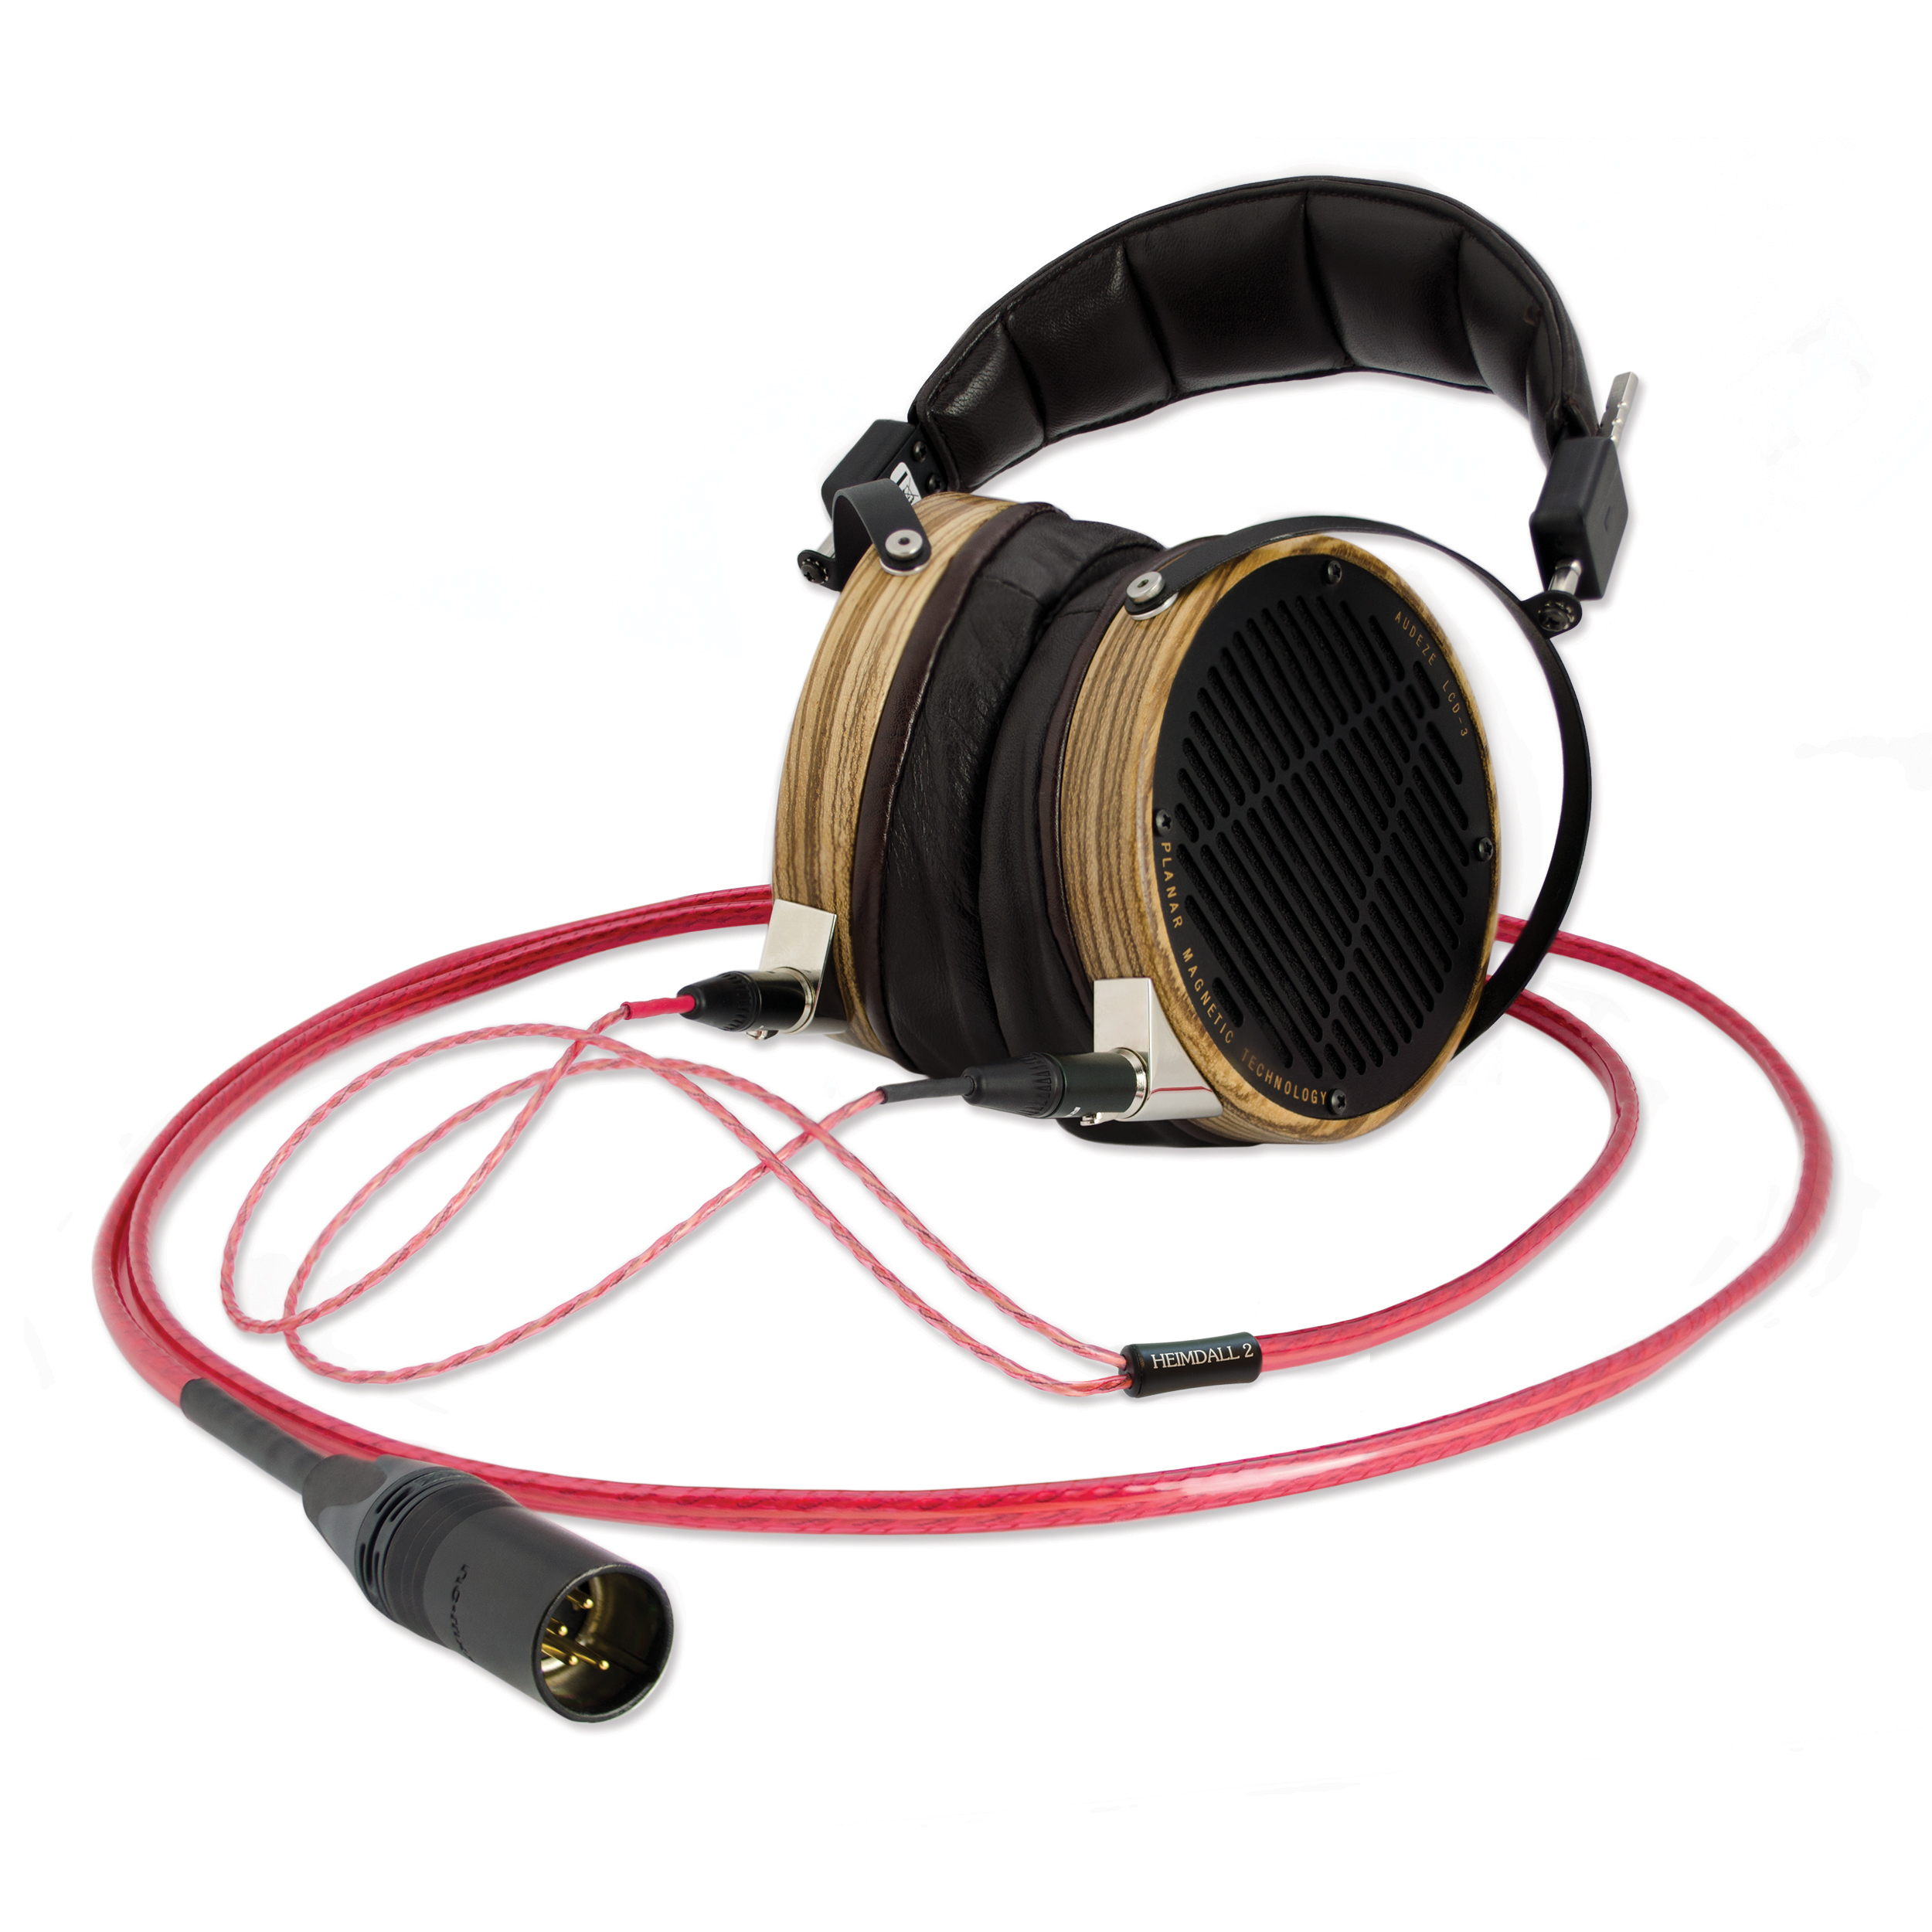 Norse 2 | Heimdall 2 Headphone Cable on